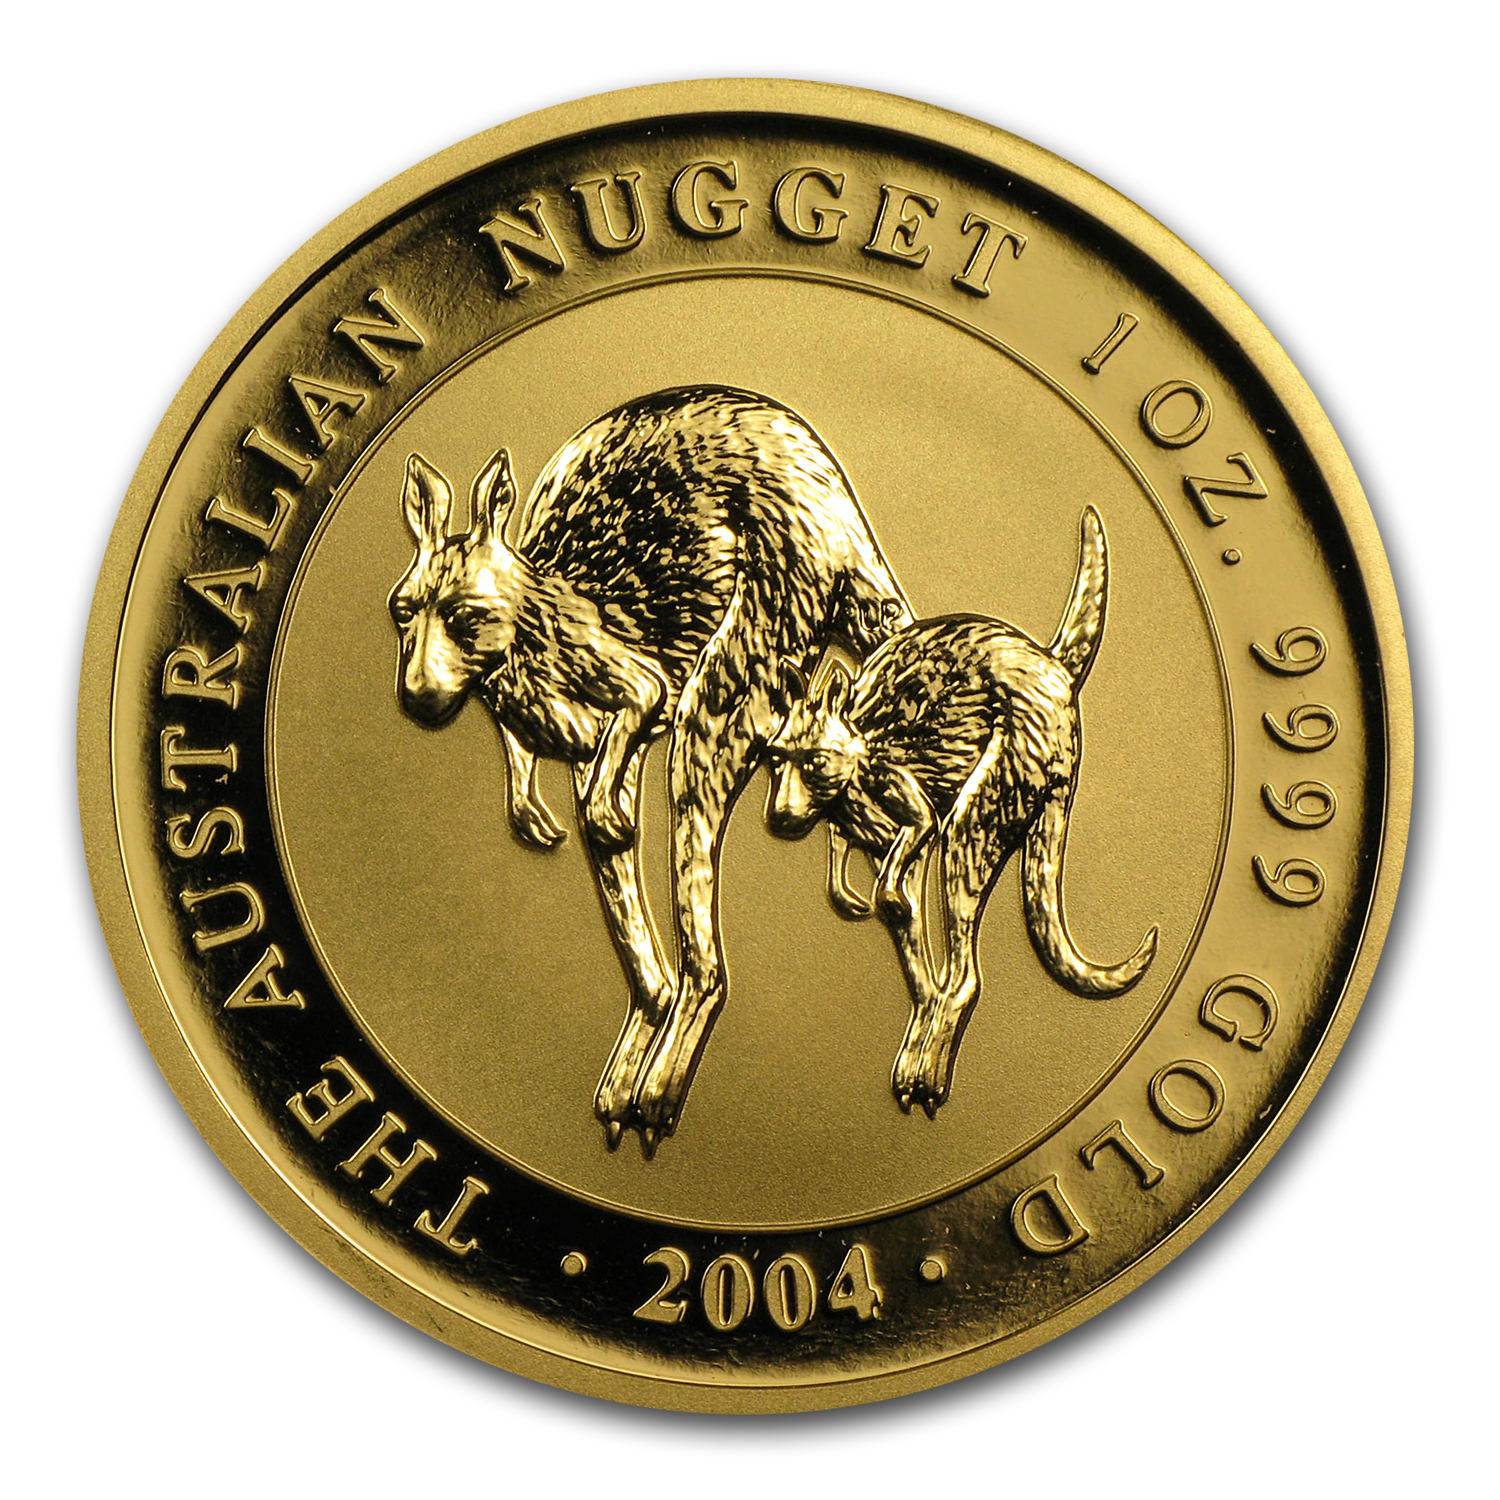 2004 1 oz Australian Gold Nugget